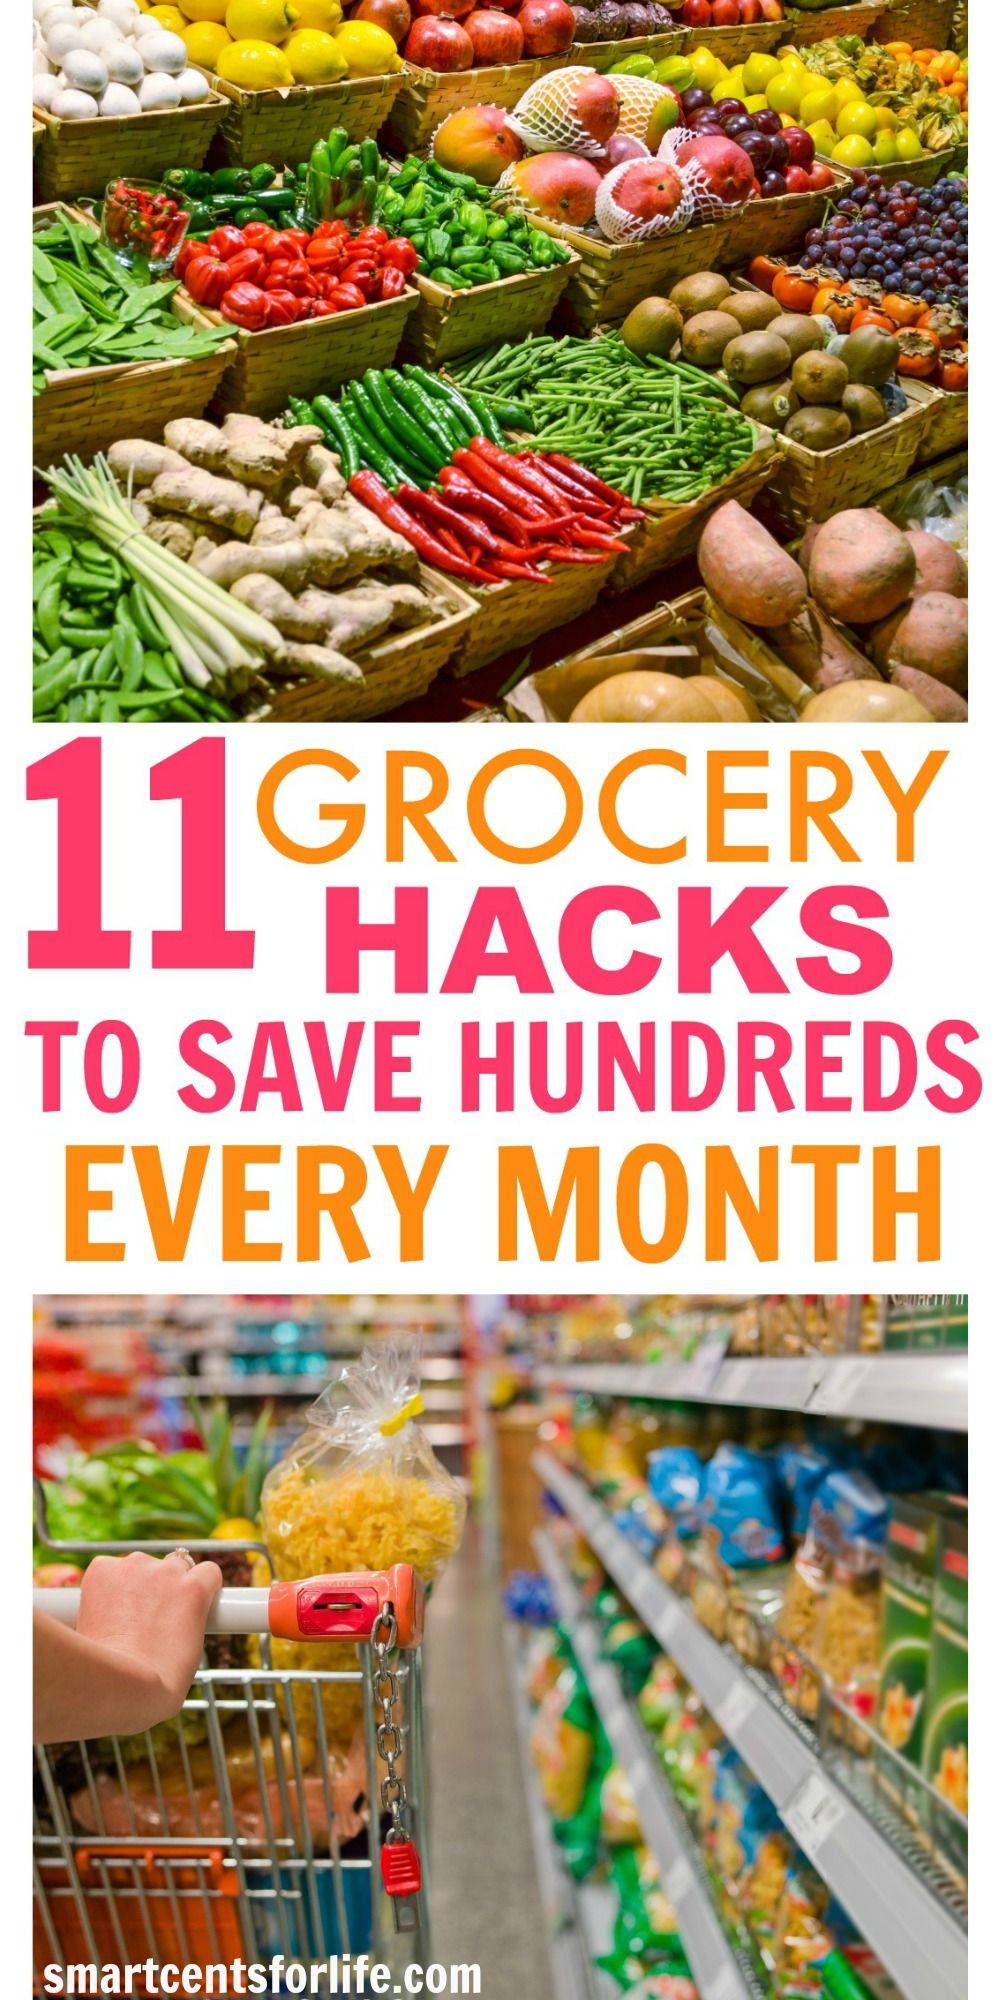 This list will show you the exact steps to save hundreds on groceries every month and without using coupons! Apply these 11 grocery hacks and start saving money now!